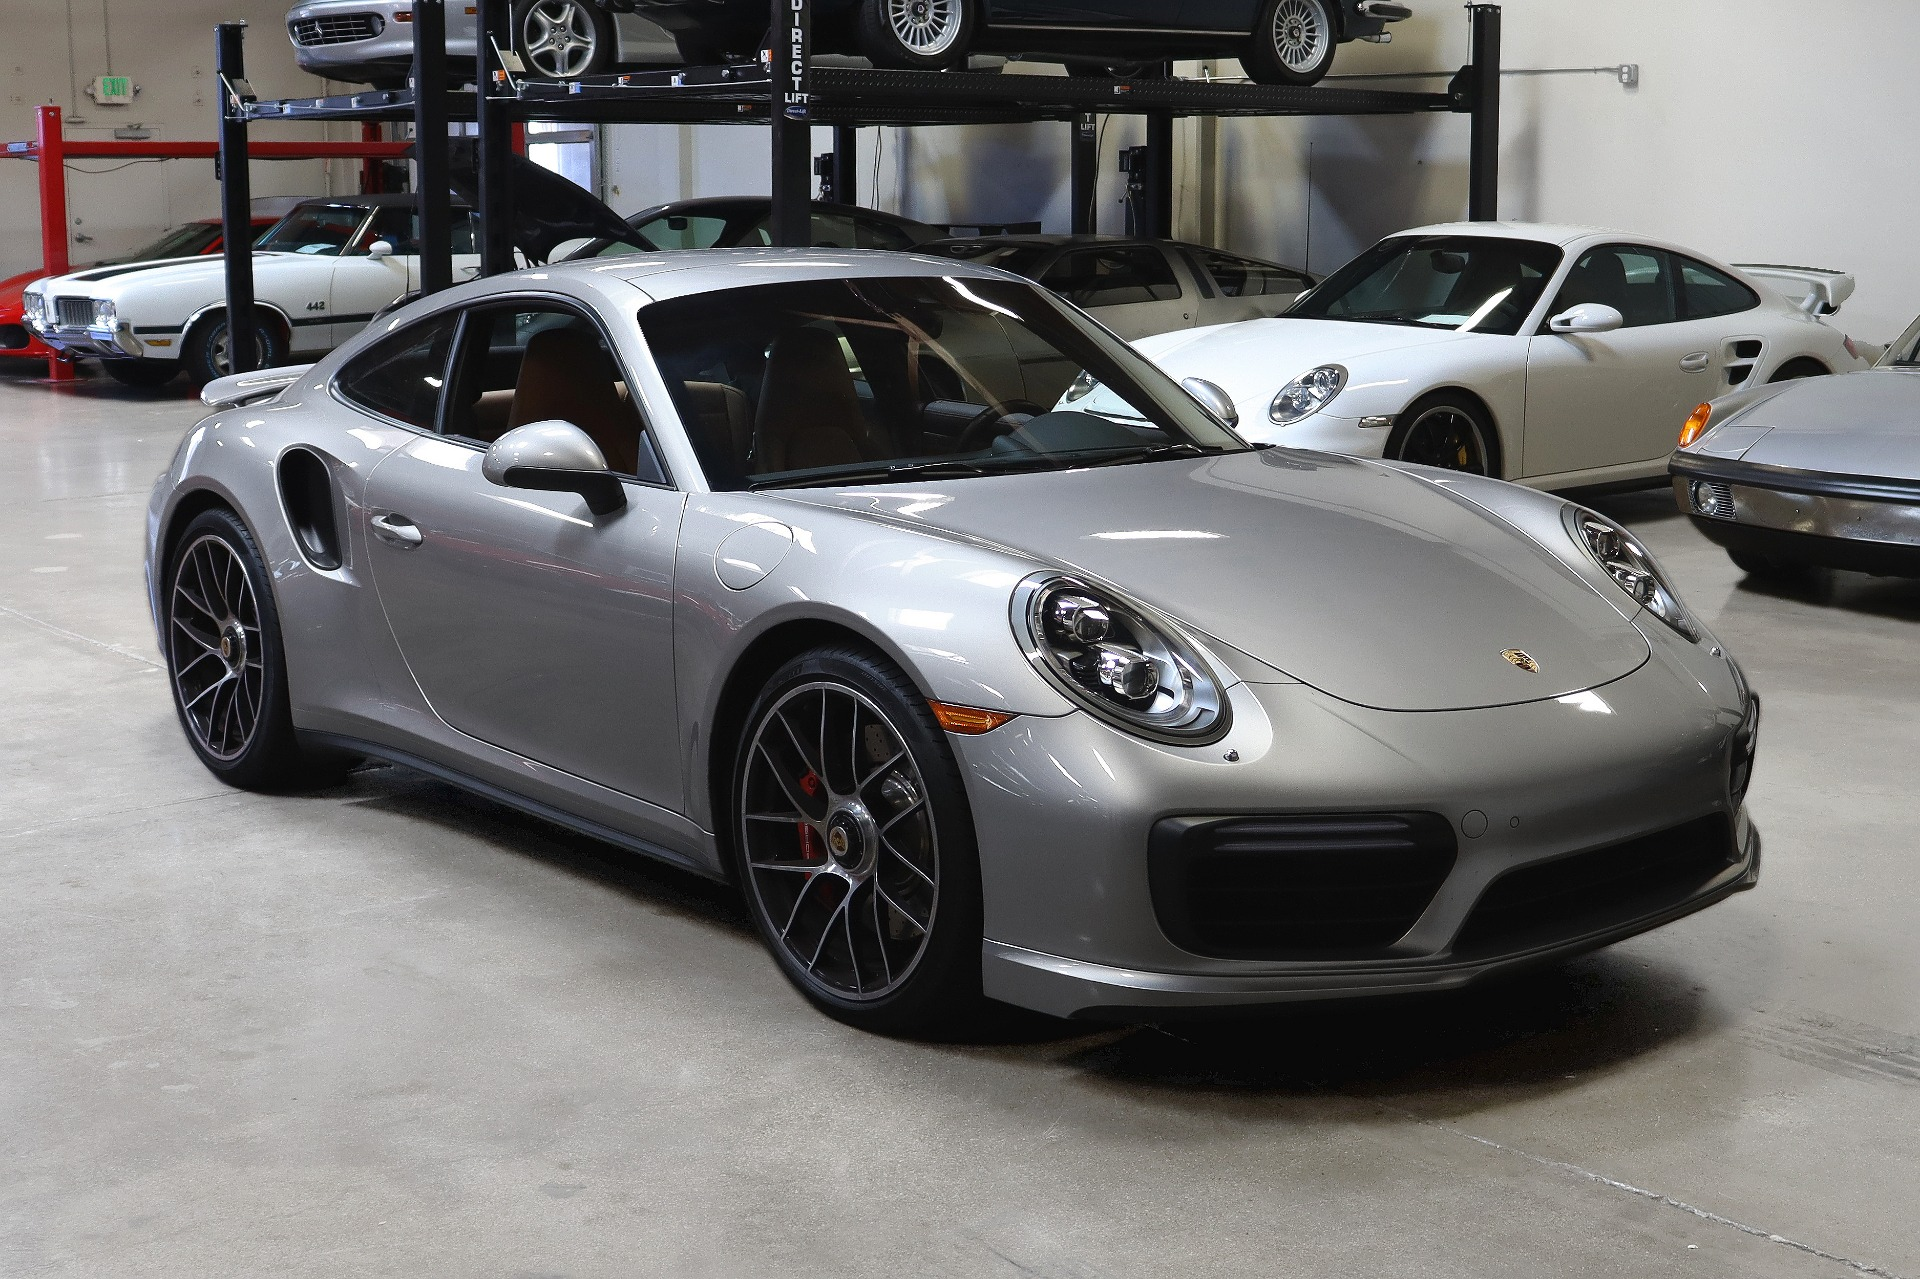 Used 2017 Porsche 911 Turbo for sale $157,995 at San Francisco Sports Cars in San Carlos CA 94070 1